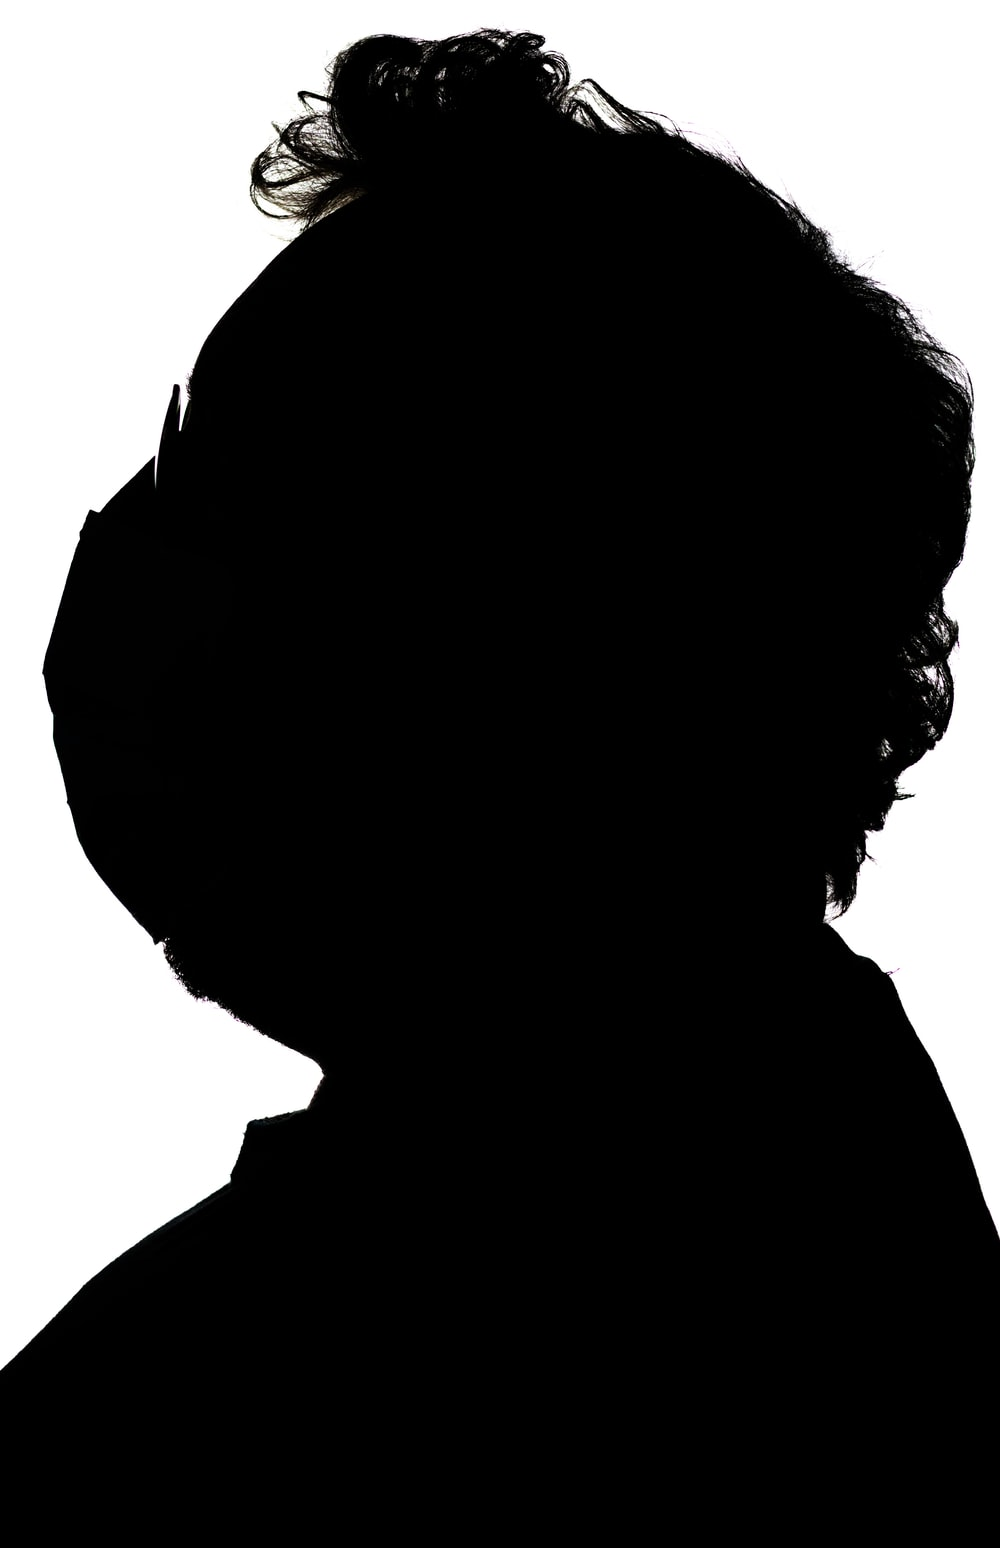 silhouette of person with black hair